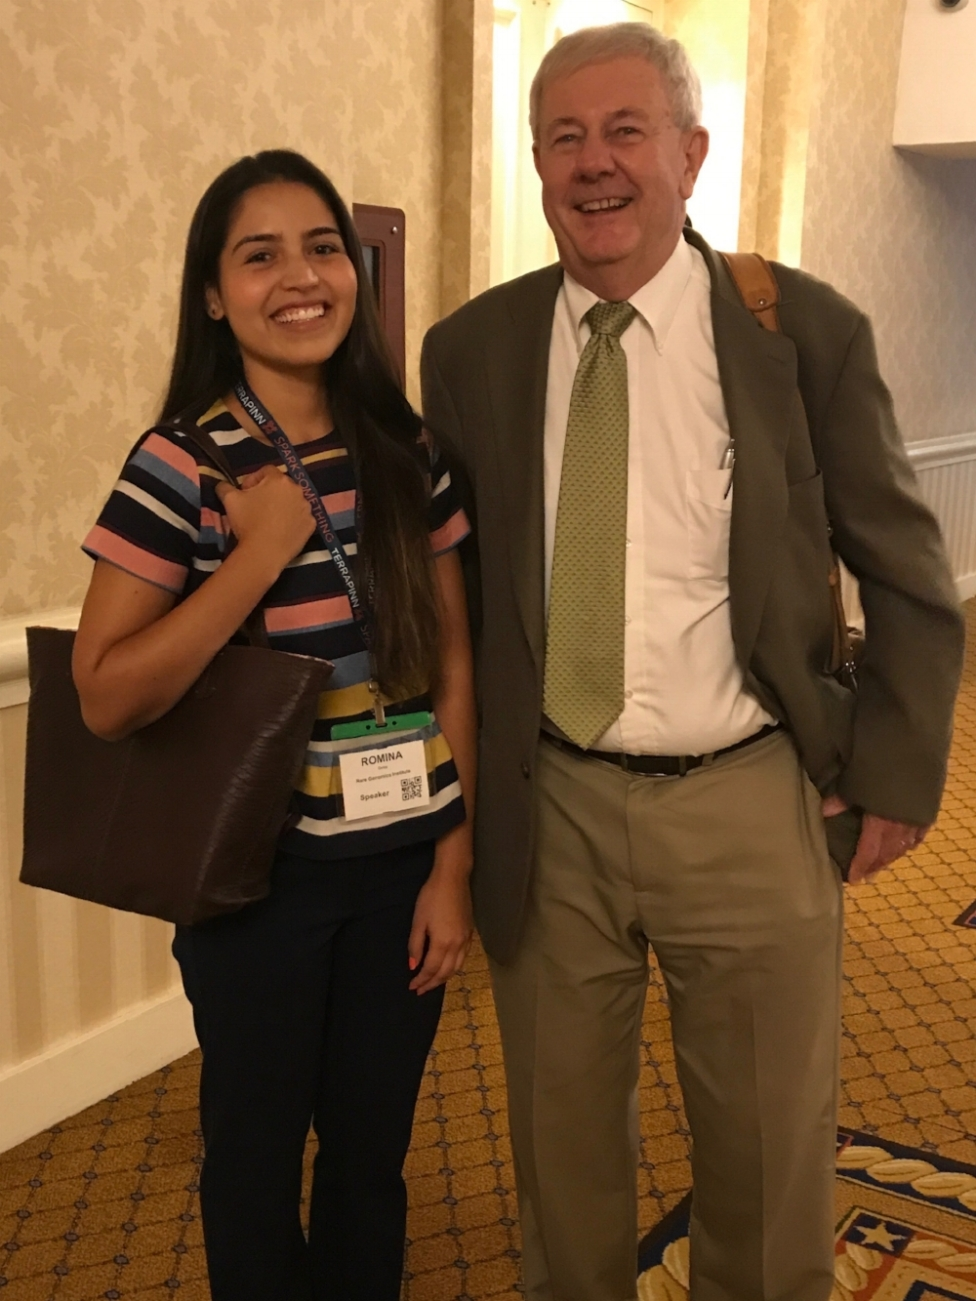 - Romina Ortiz (COO & VP Patient Advocacy) with Stephen C. Groft, PharmD.Steve is currently a Senior Advisor to the Director, National Center for Advancing Translational Sciences at NIH. He served as the Director of the Office of Rare Diseases Research (ORDR) in NCATS at the NIH from 1993-2014. His major focus has been on stimulating research with rare diseases and developing information about rare diseases and conditions for health care providers and the public.